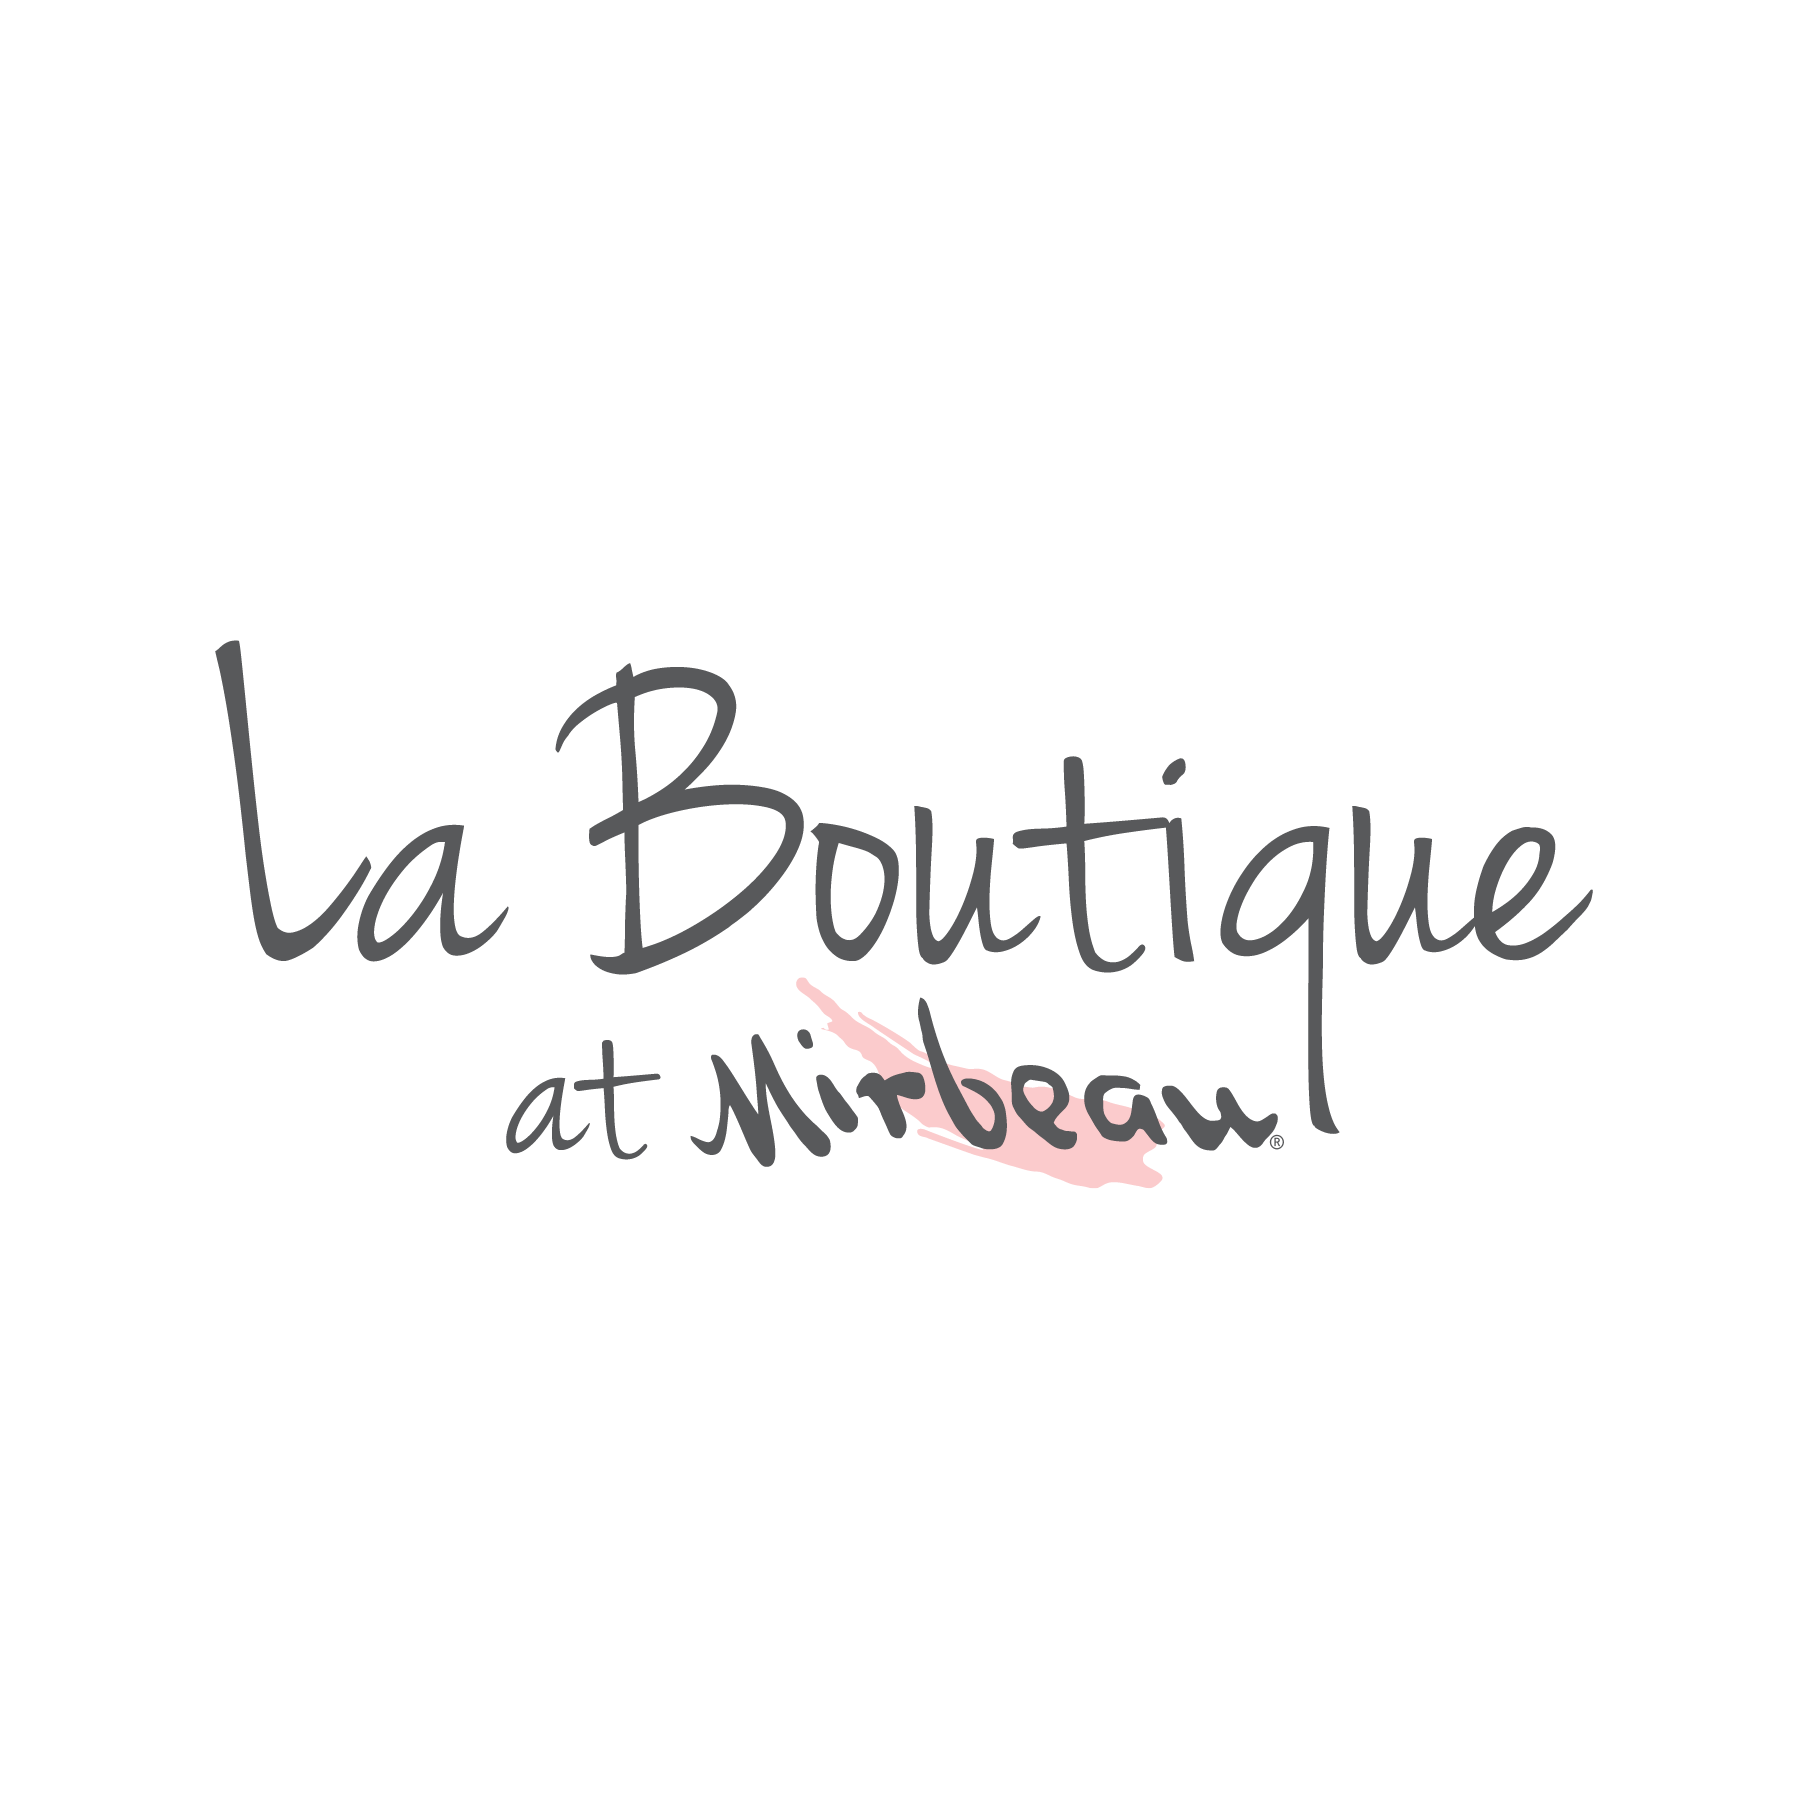 La Boutique at Mirbeau